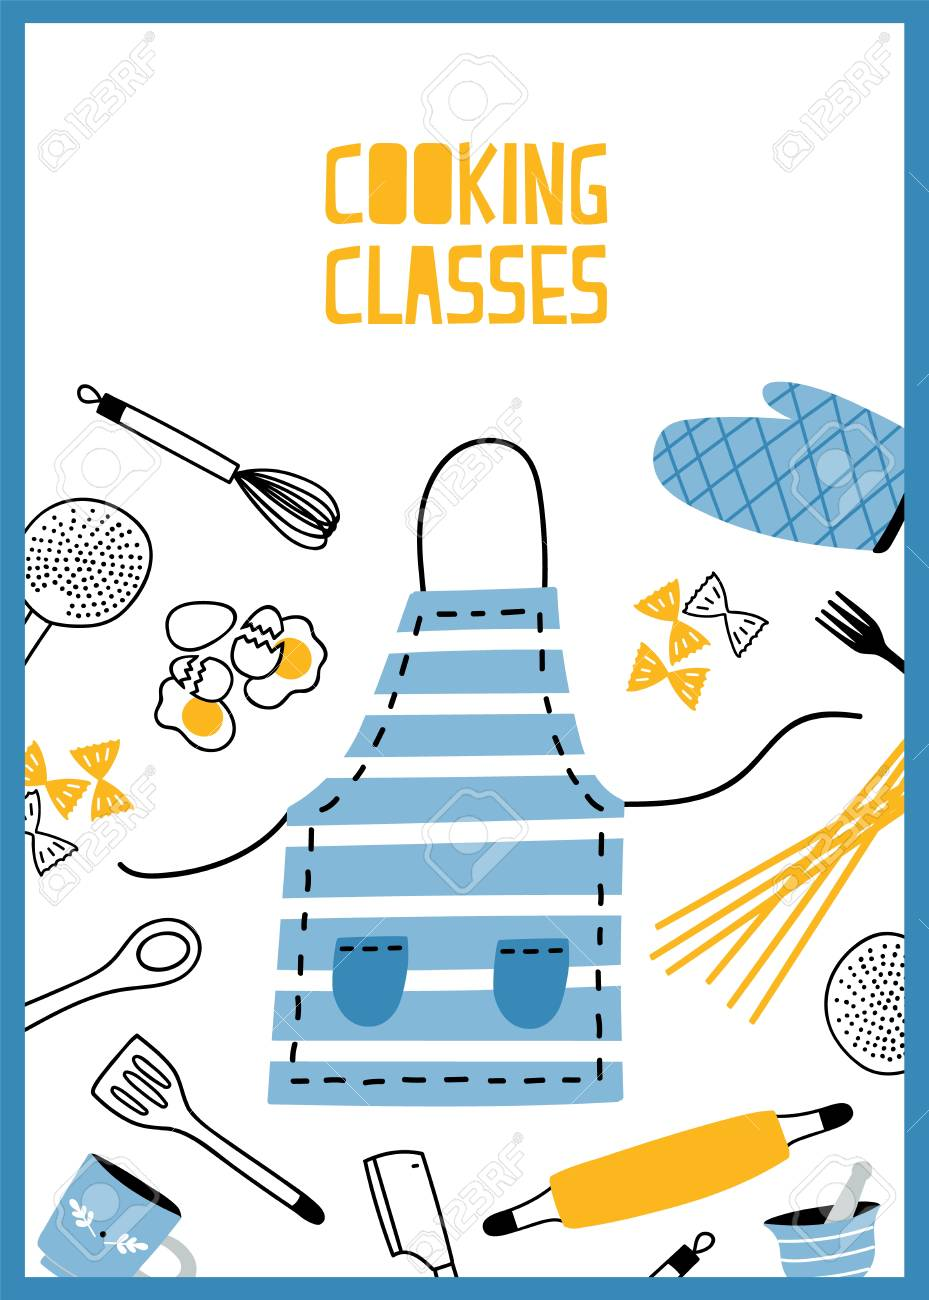 Flyer Or Poster Template With Kitchen Utensils Tools And Equipment